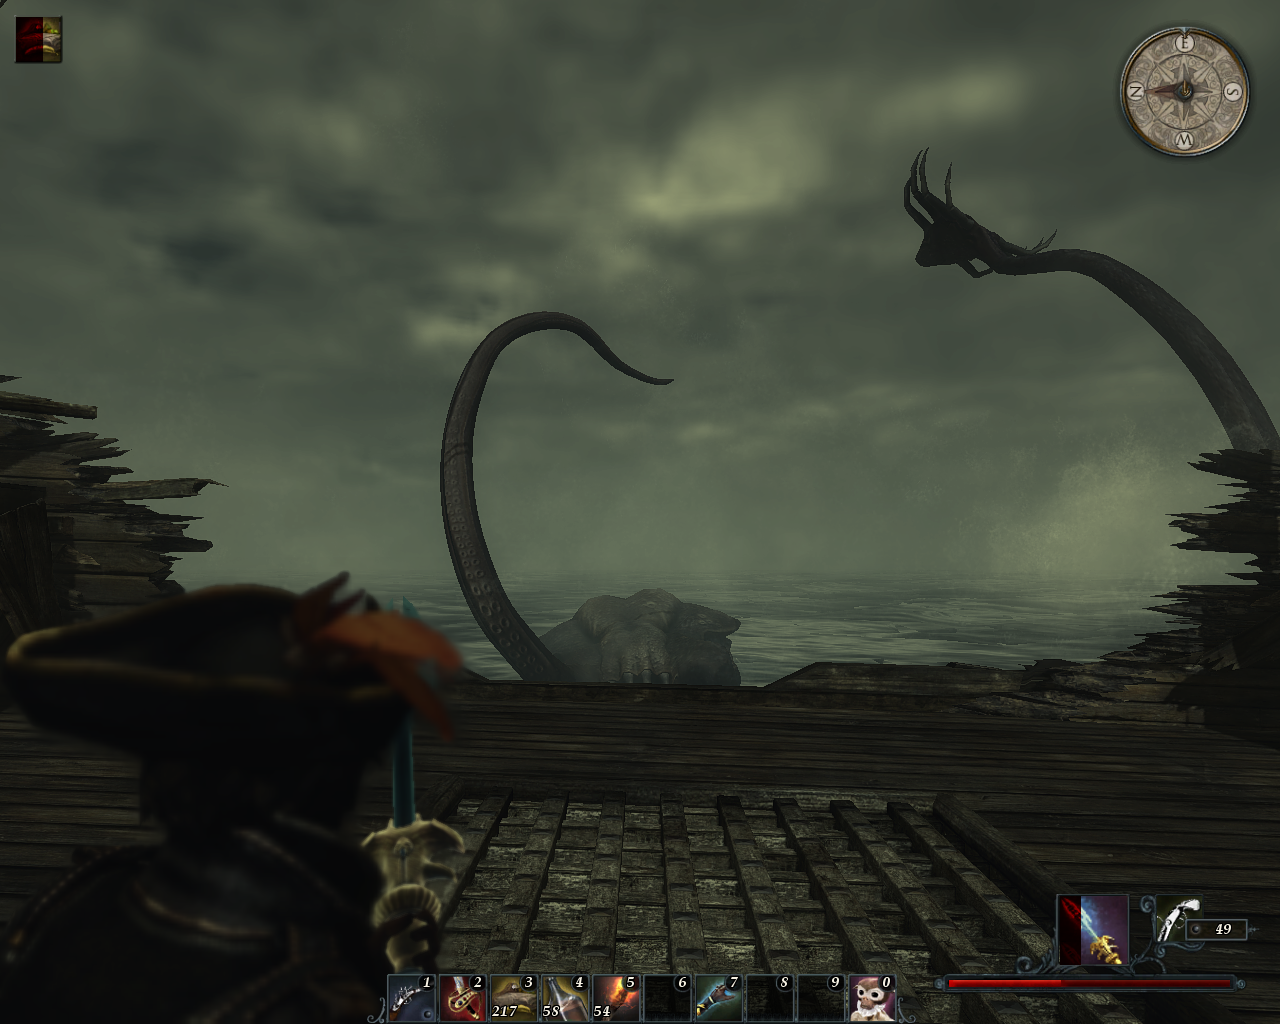 Risen 2: Dark Waters Windows The ship attacked by Kraken